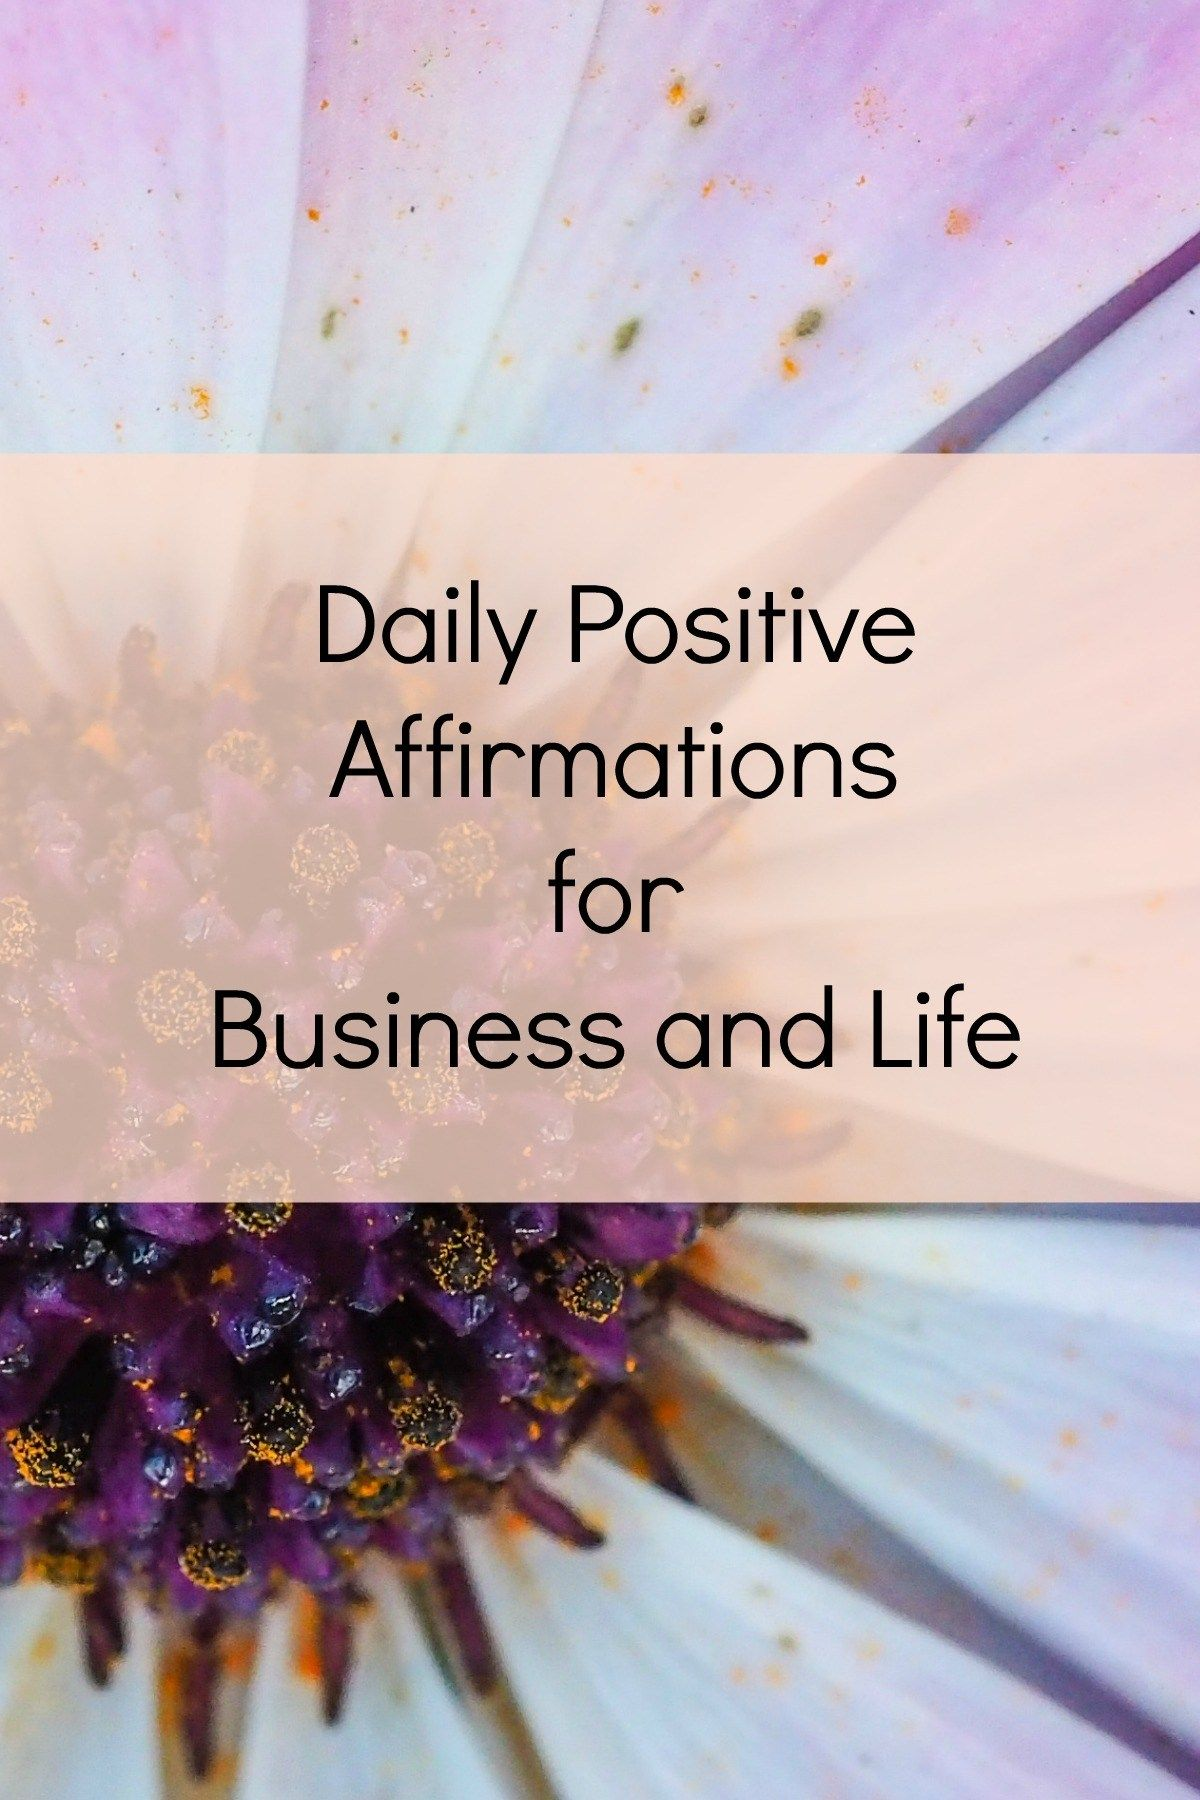 Daily Positive Quotes Daily Positive Affirmations For Business And Life  Daily Positive